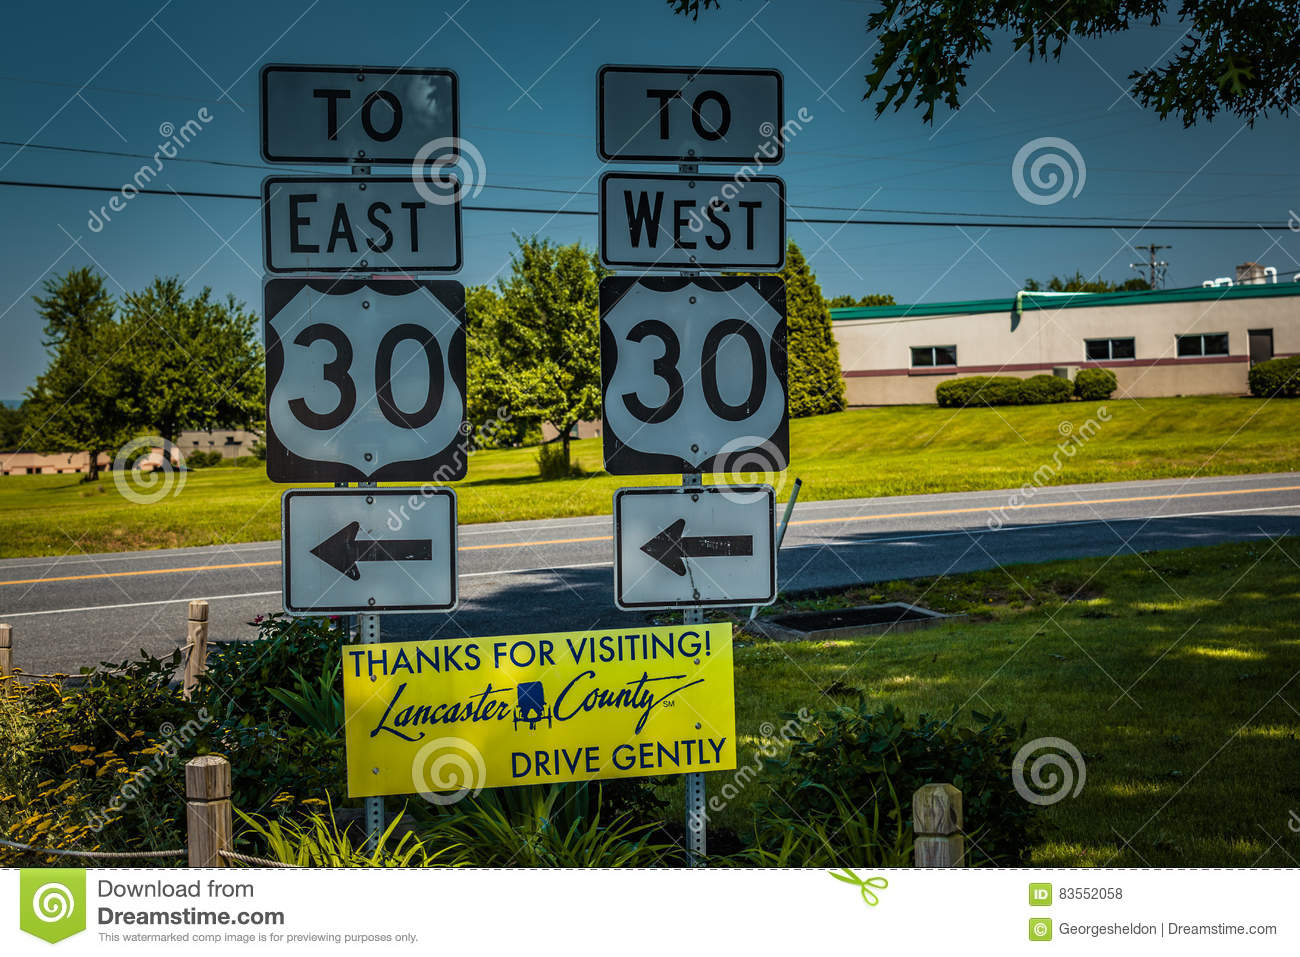 route 30 signs in lancaster county pa editorial stock photo - image